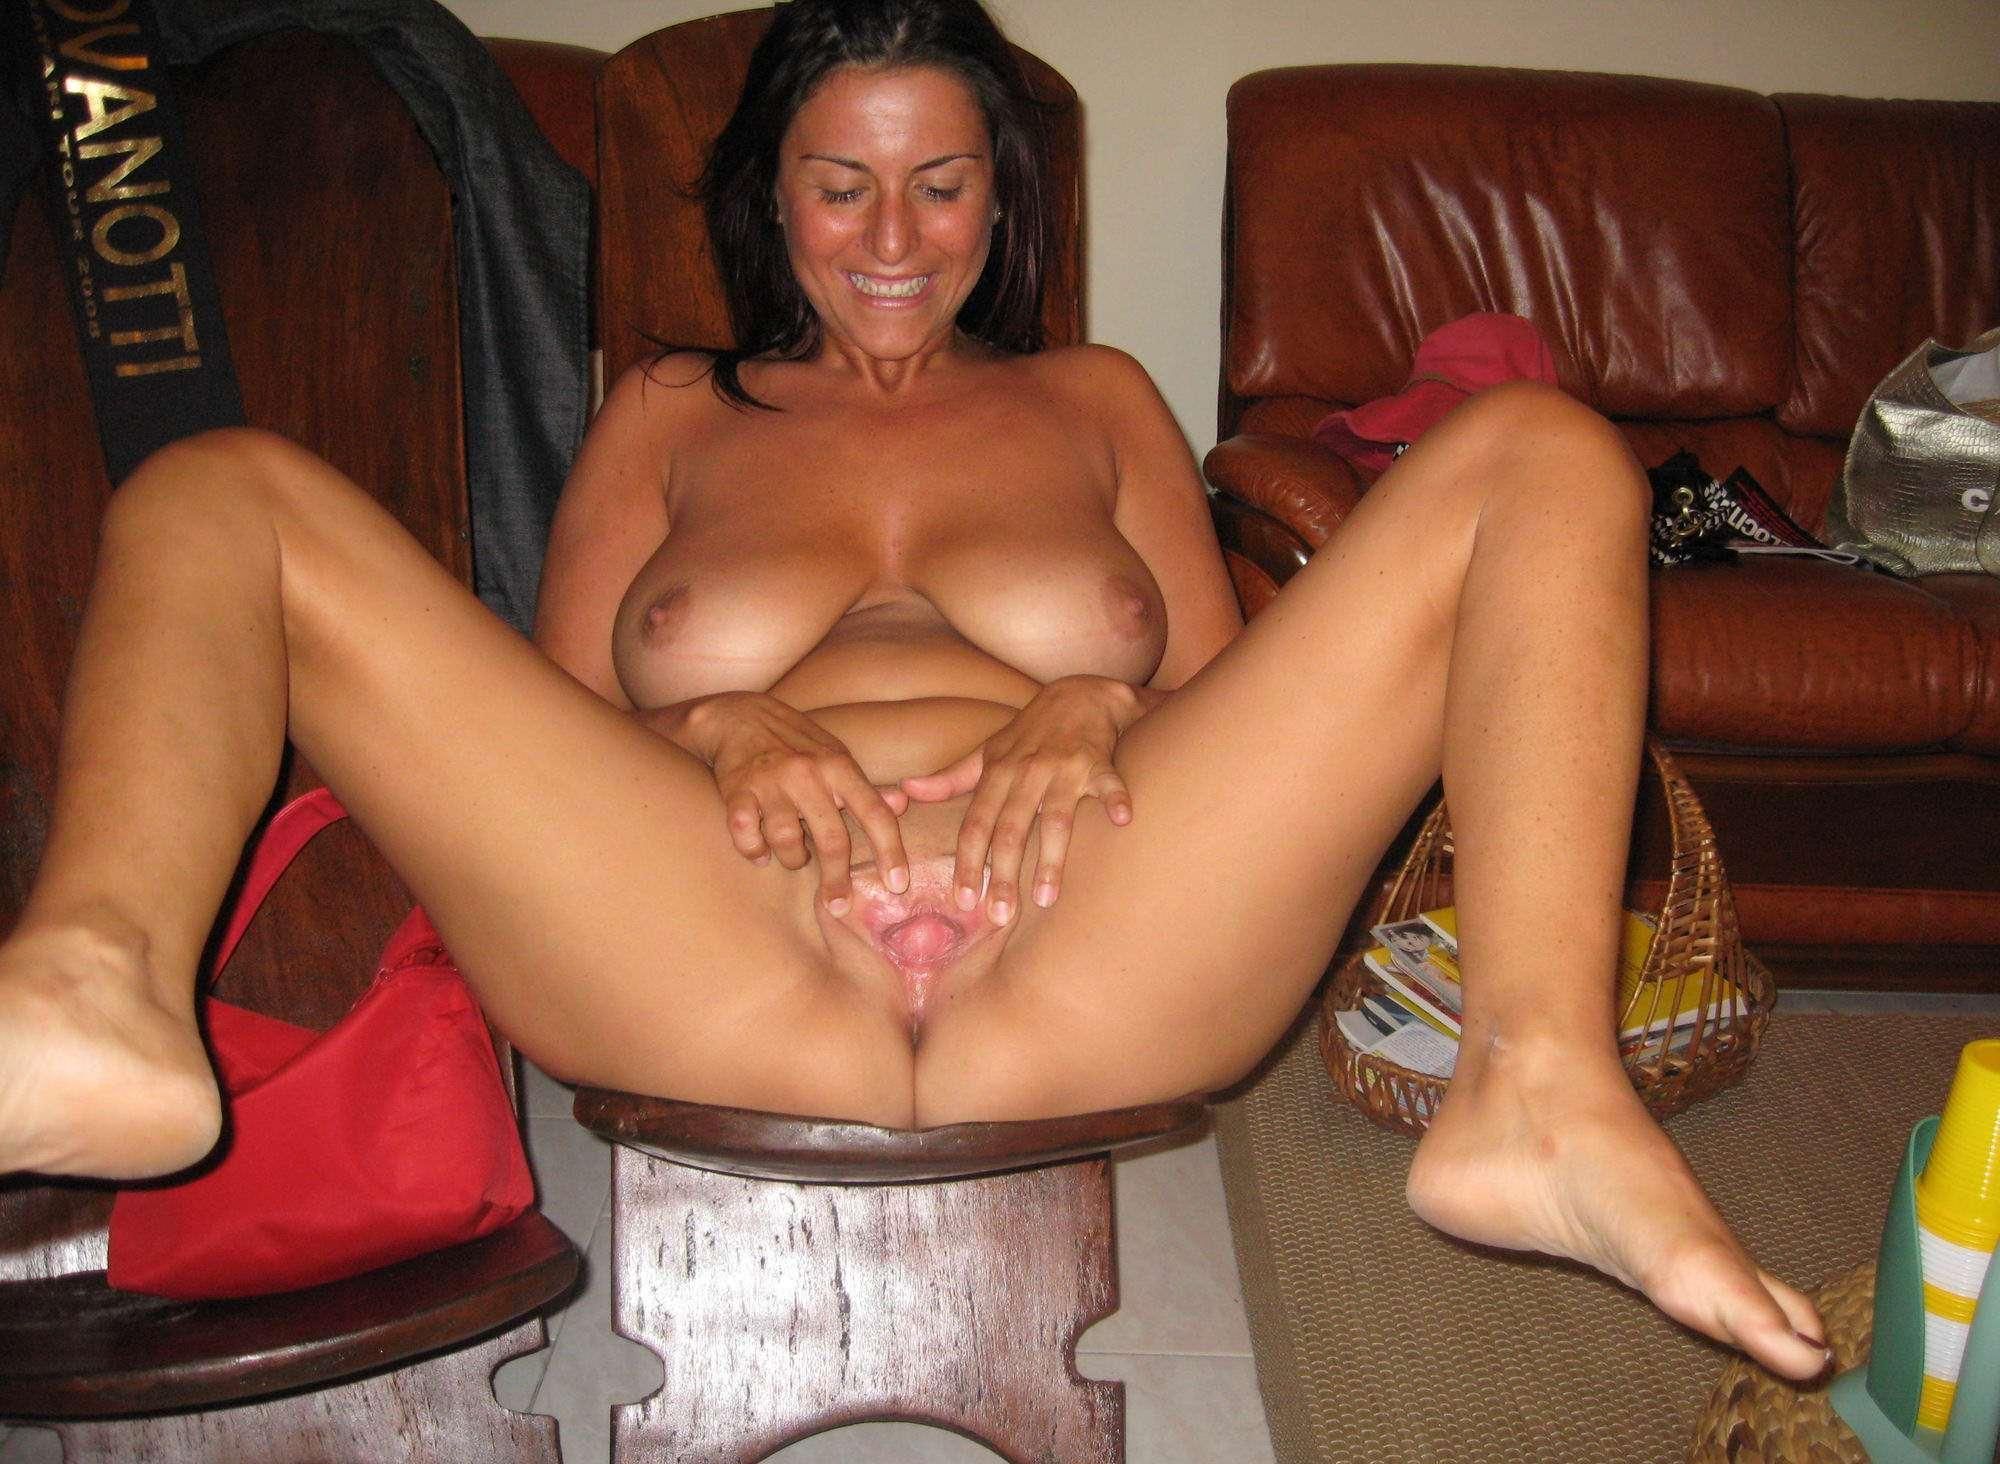 Busty MILF does an incredible striptease performance. Woman with firm boobs and meaty pussy lips tries nude spreading